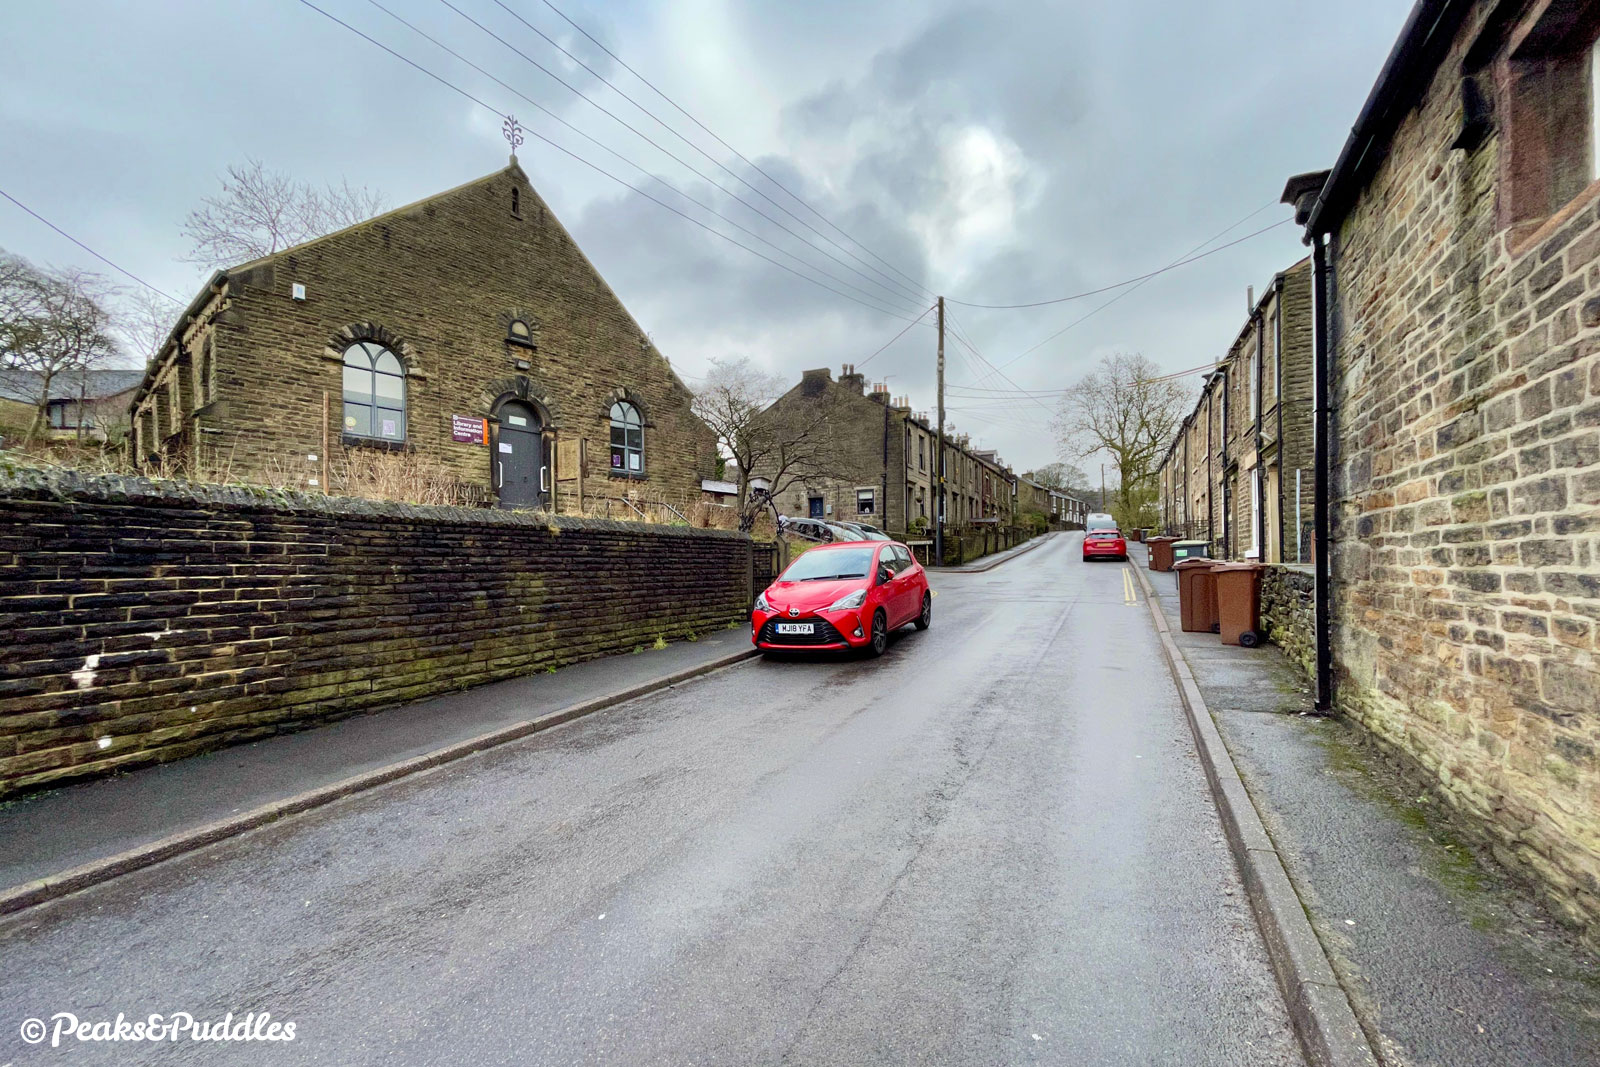 Continuing up Kinder Road, past terraced cottages and the village library.